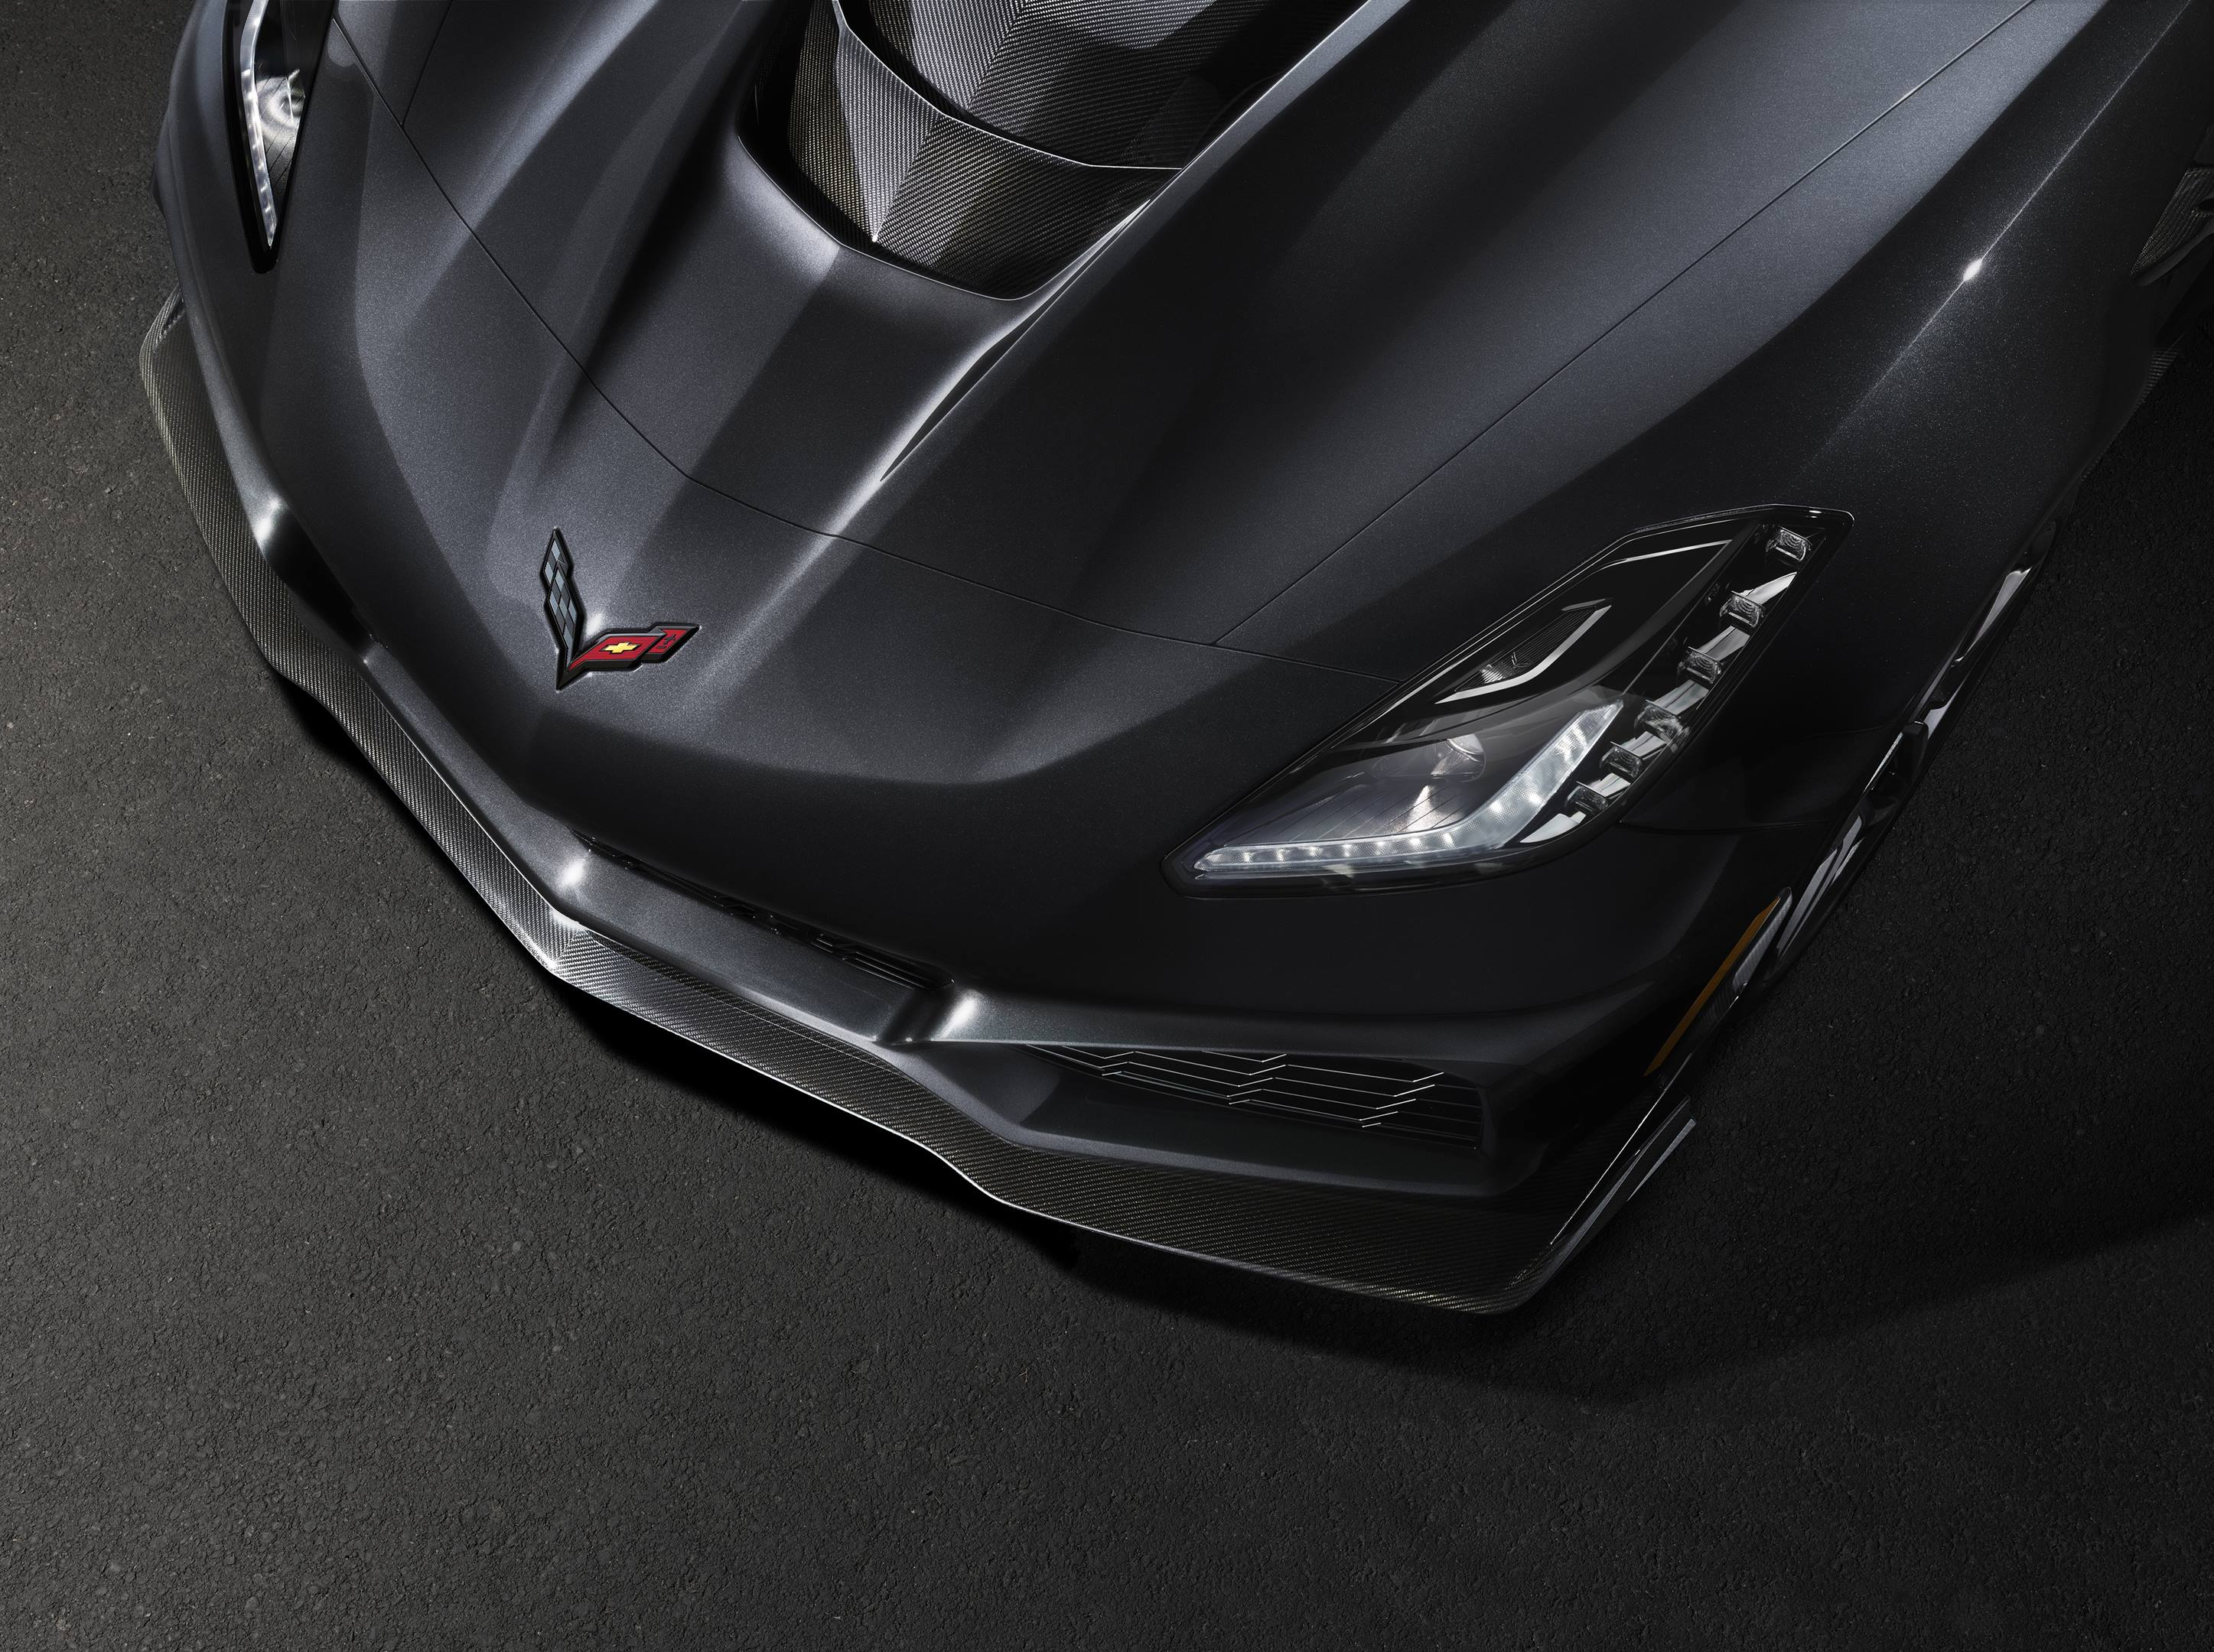 2019 Chevrolet Corvette ZR1 Front hood detail shot